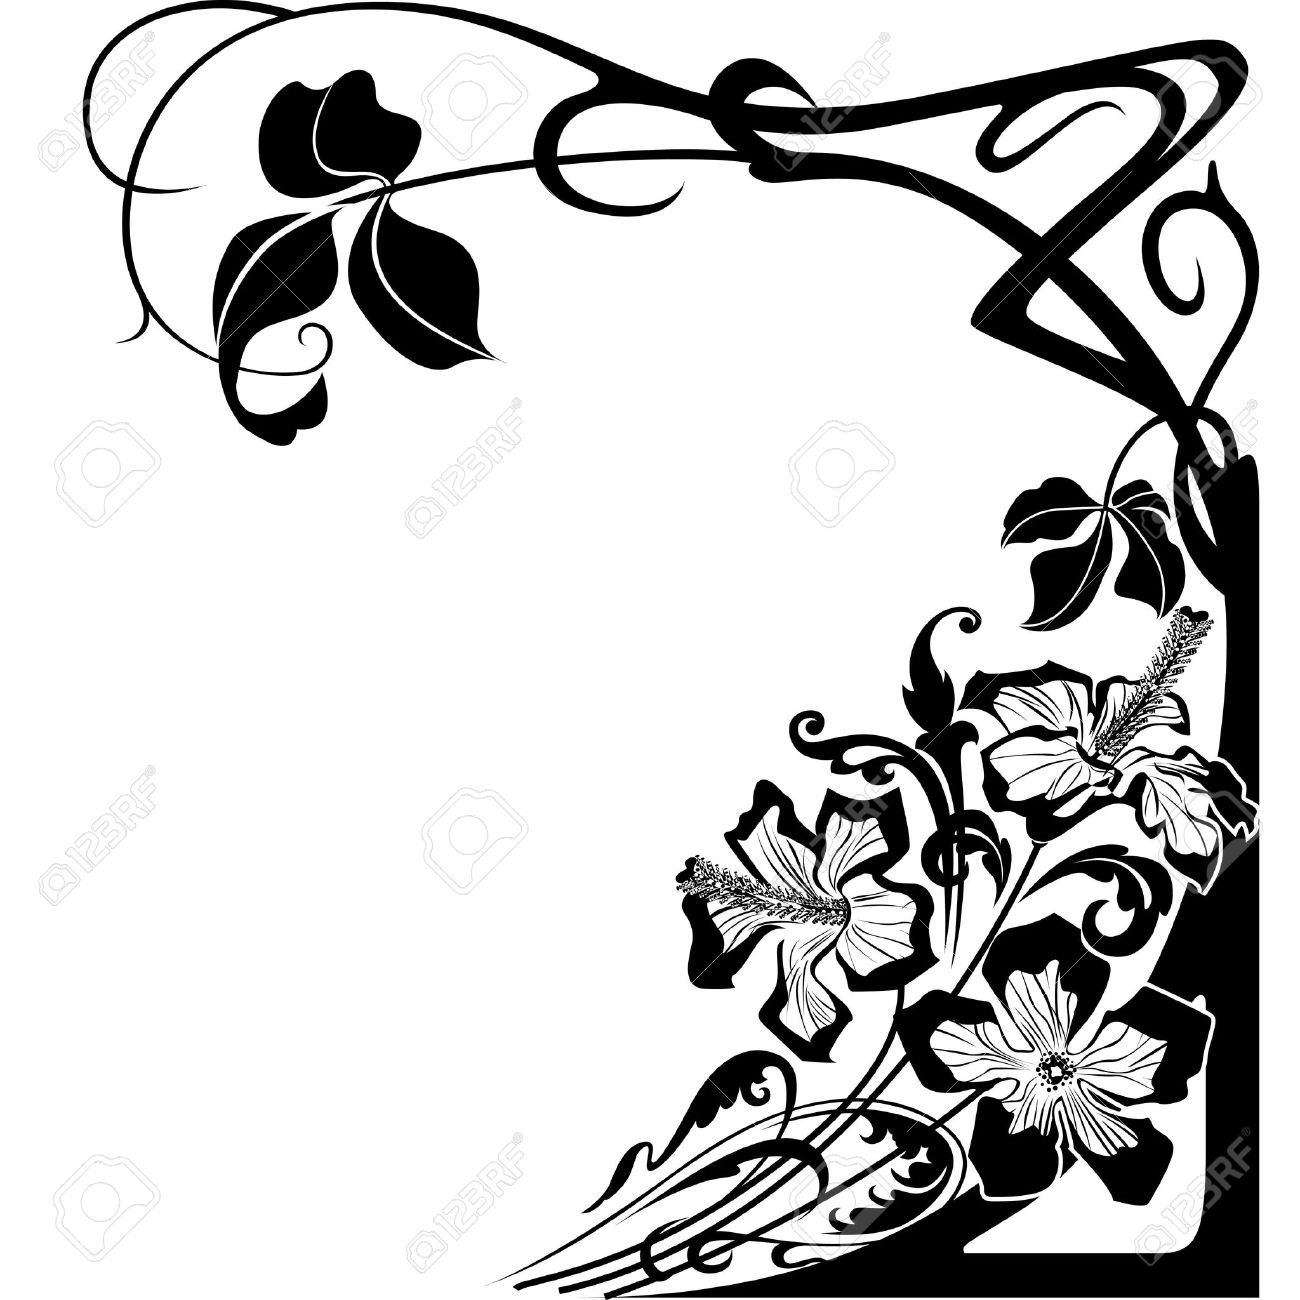 Flowers And Floral Design In Art Nouveau Style. Royalty